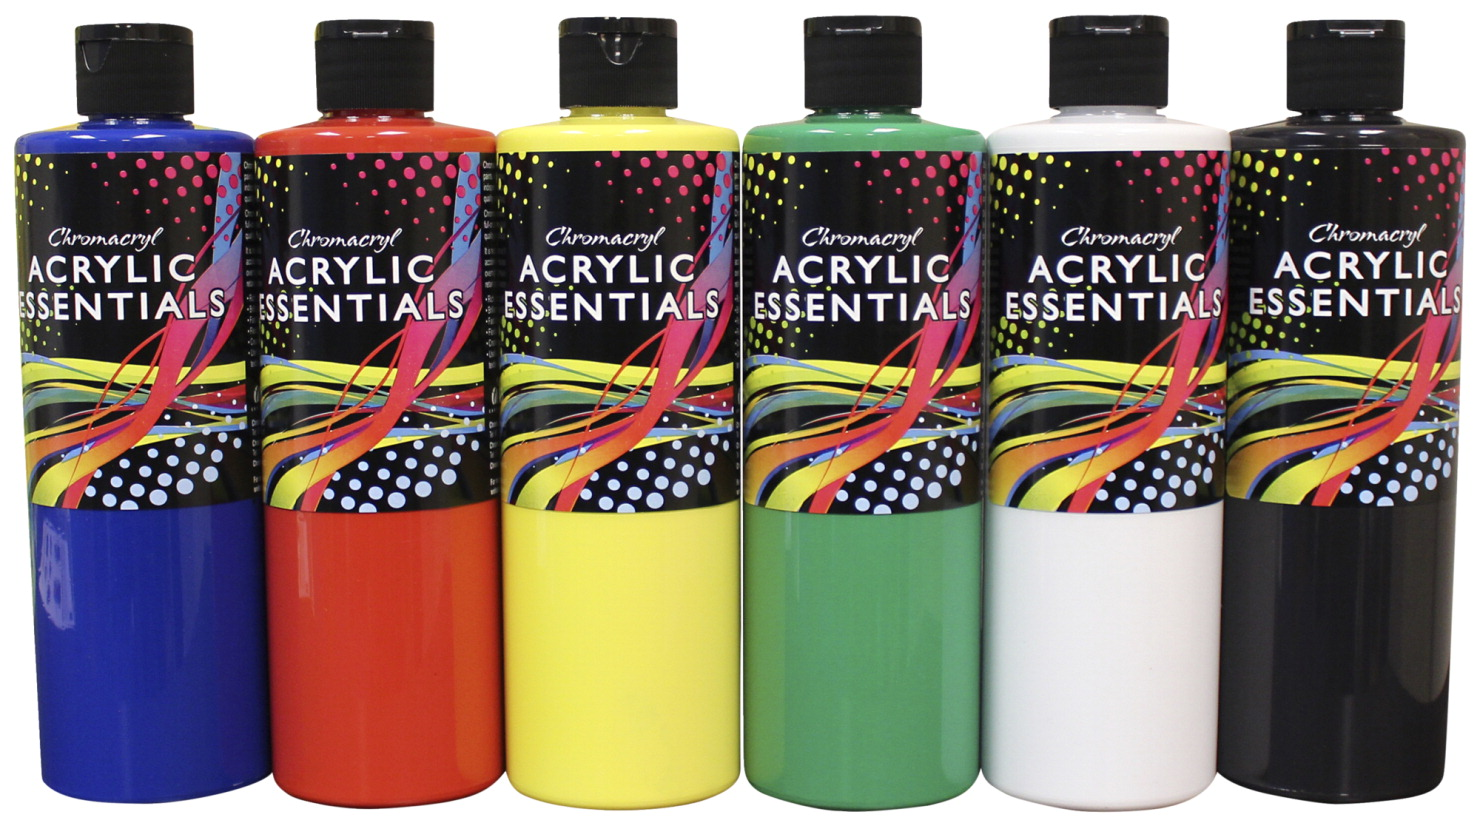 Acrylic essential set classroom direct for Chroma acrylic mural paint review